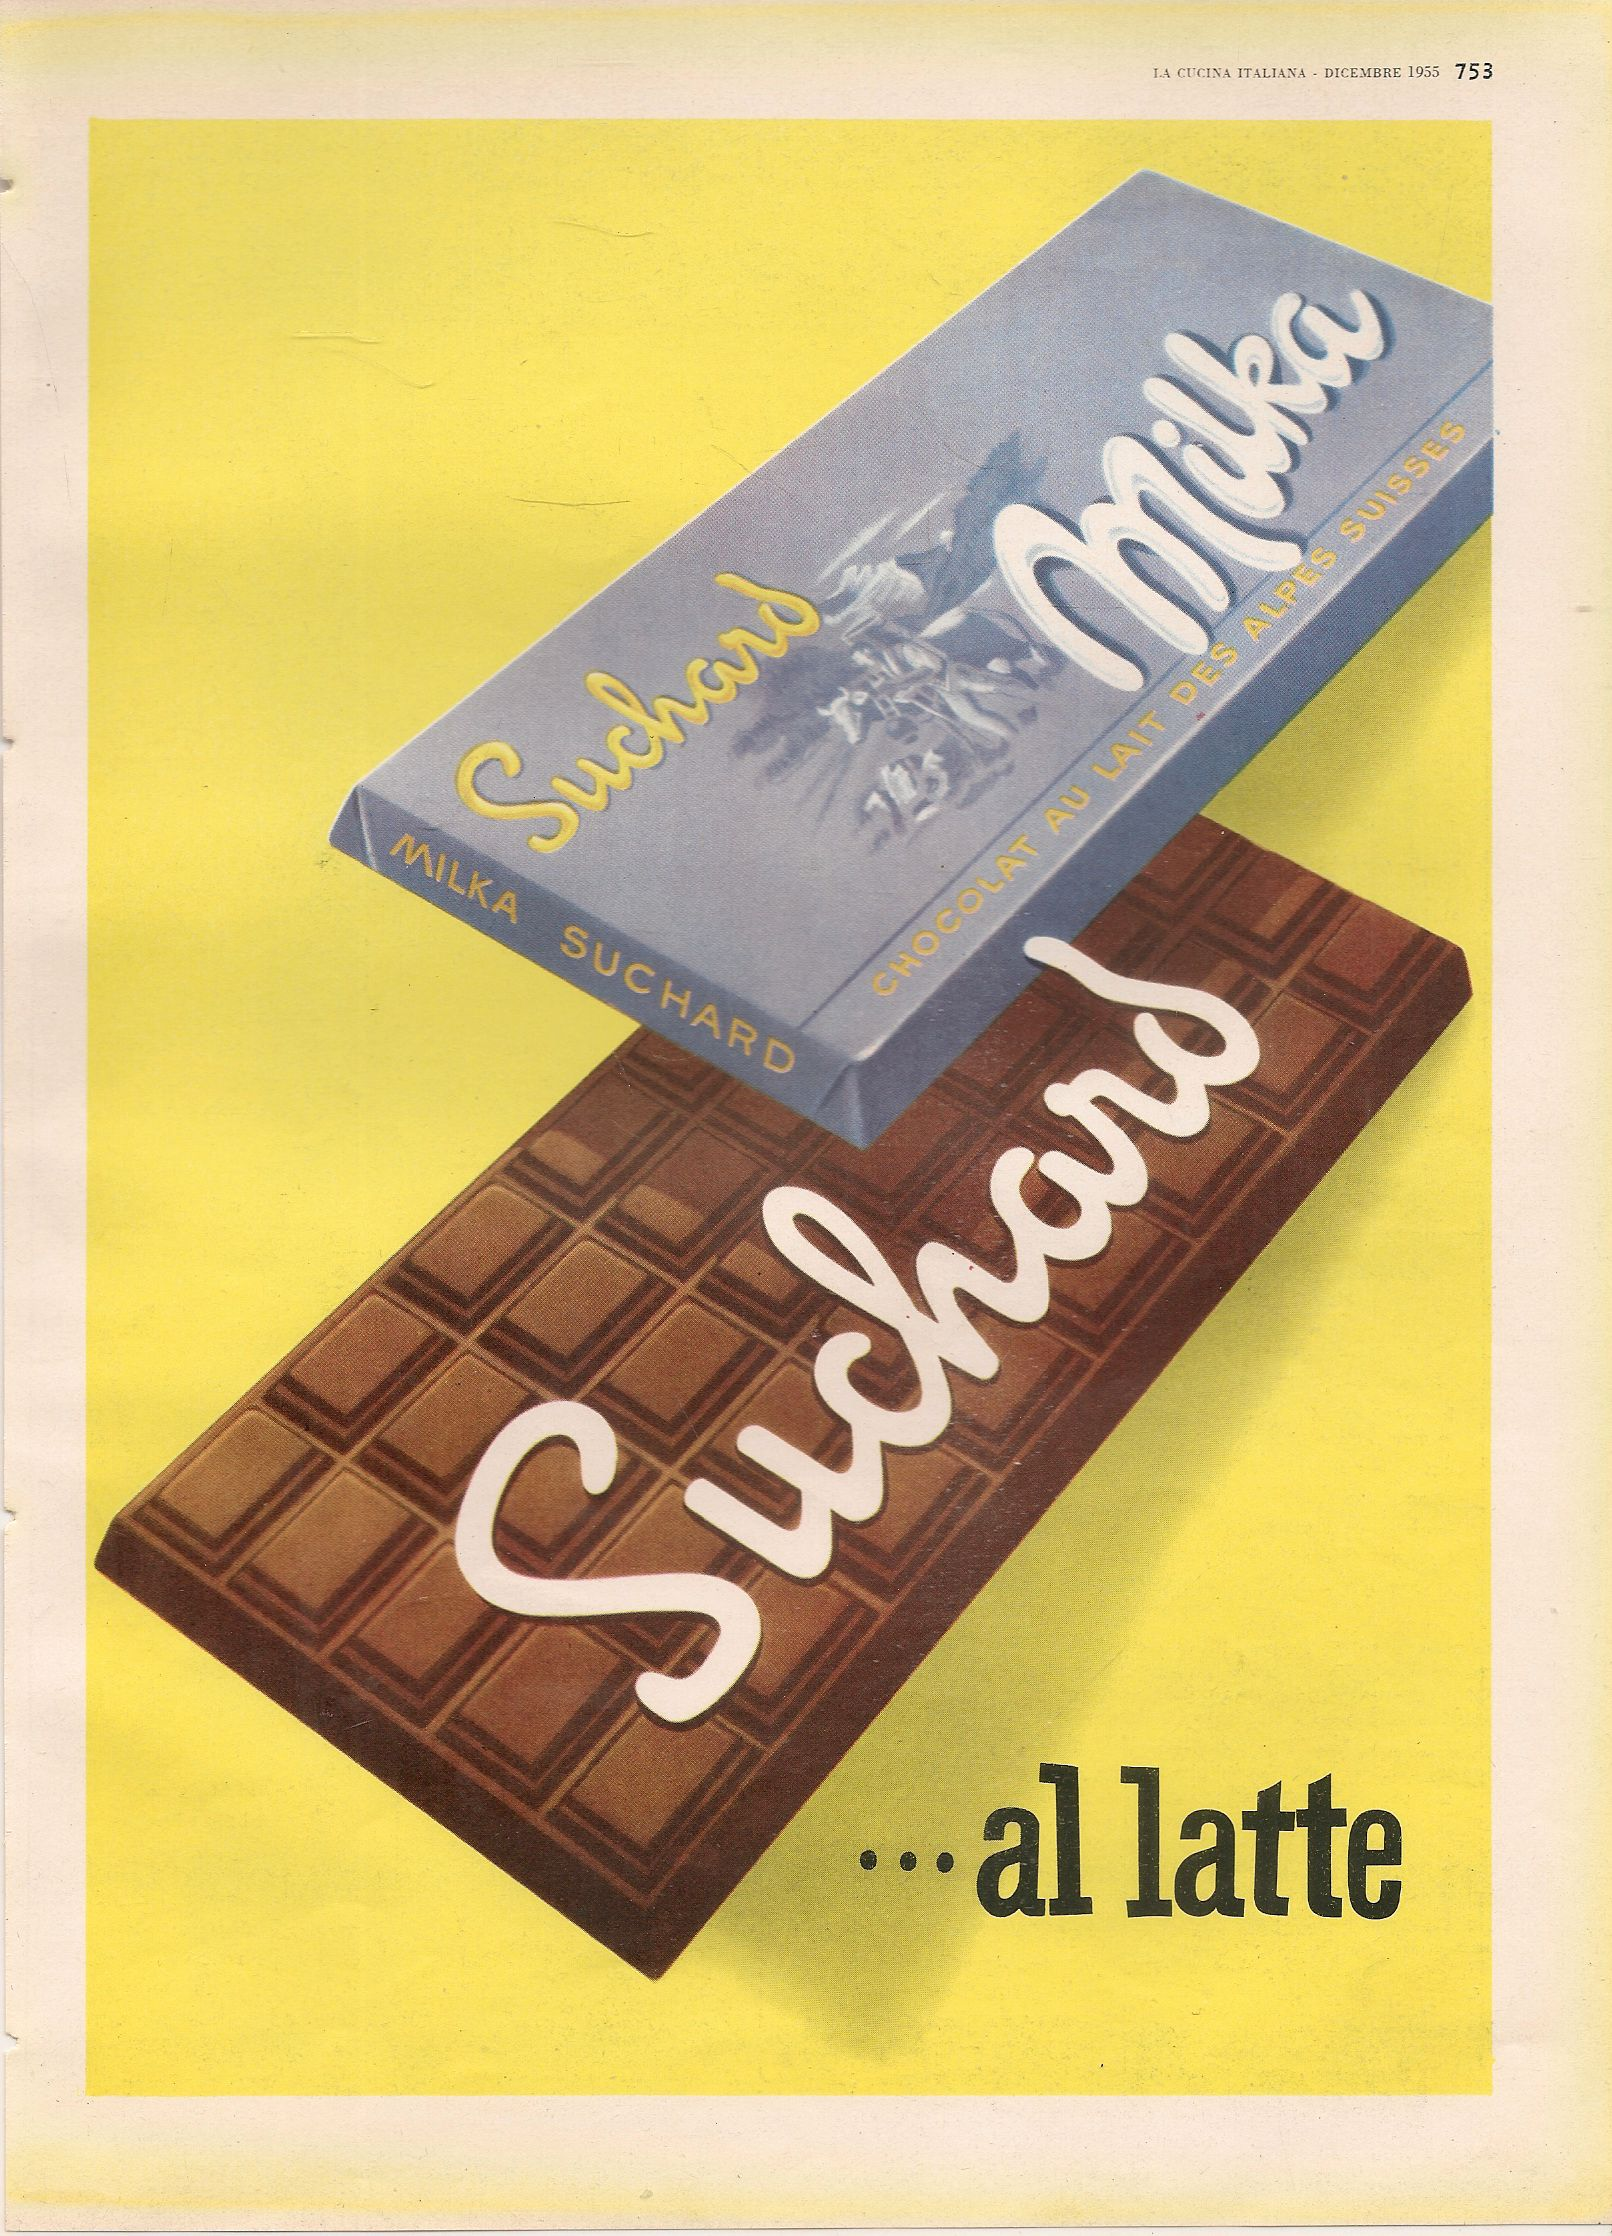 MILKA SUCHARD - ADVERTISING